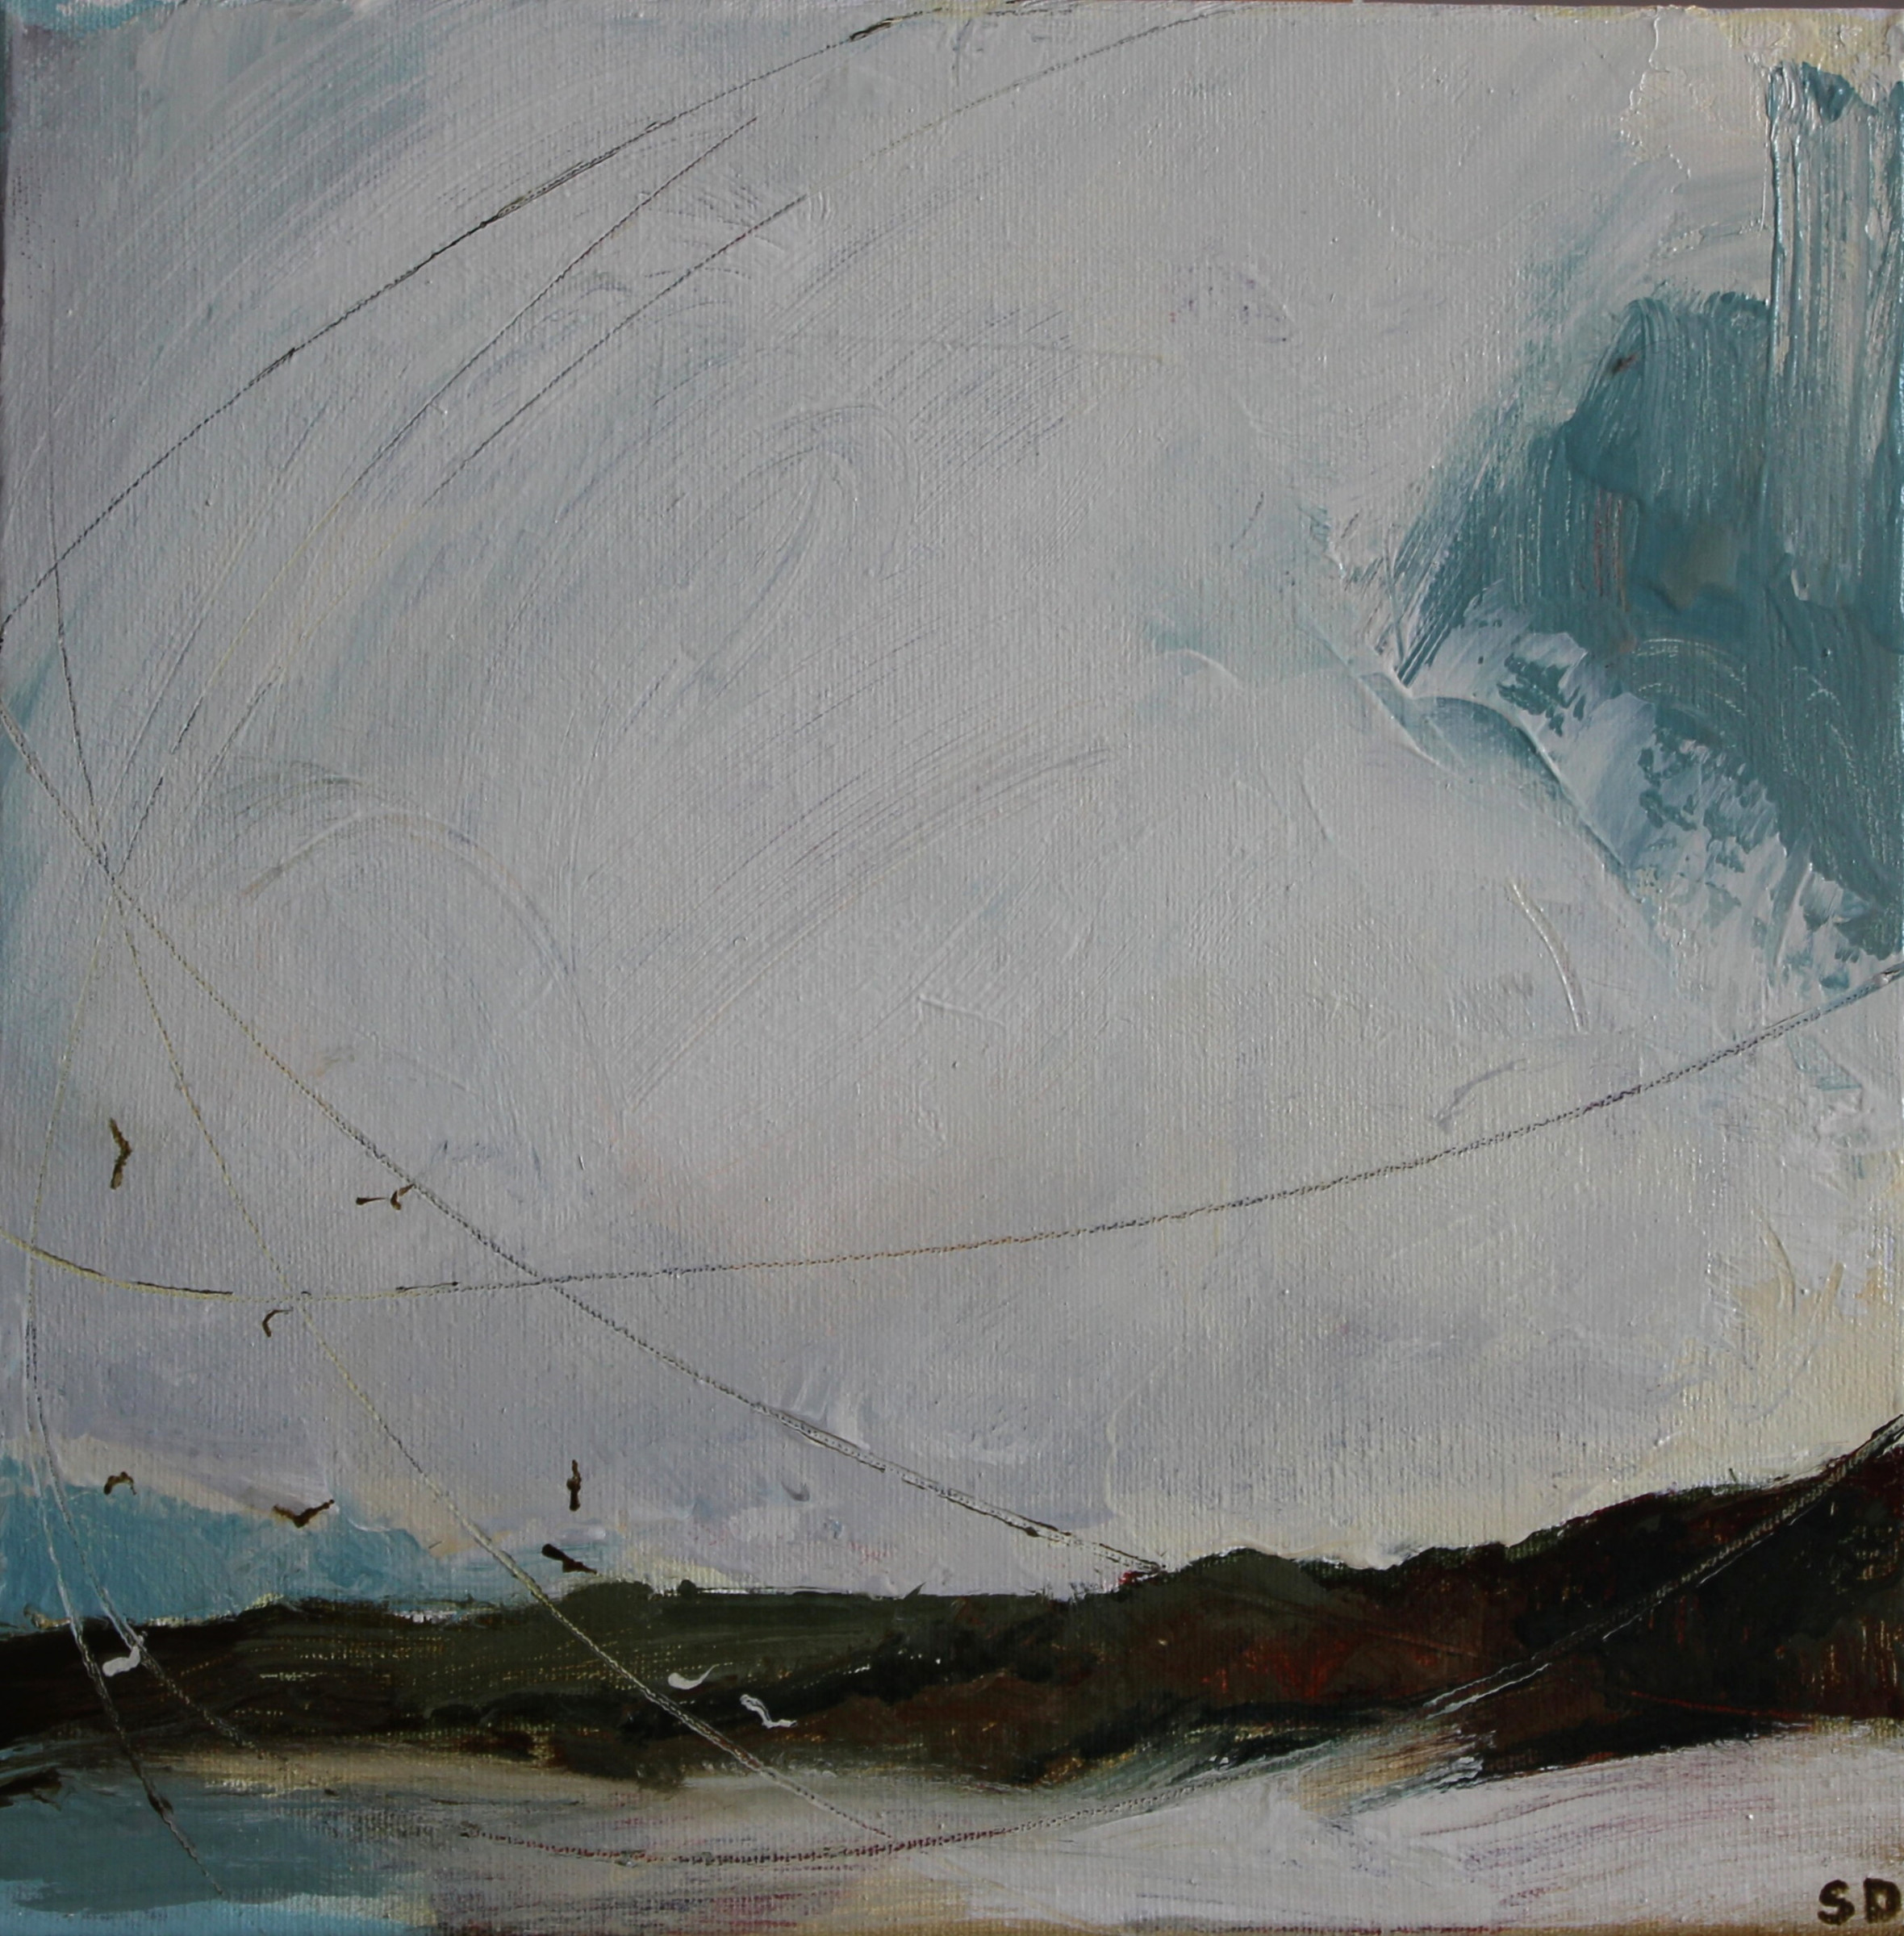 "<span class=""link fancybox-details-link""><a href=""/artists/159-sara-dudman-rwa/works/6507-sara-dudman-rwa-seabirds-great-bay-st-martin-s-study-3-2019/"">View Detail Page</a></span><div class=""artist""><strong>Sara Dudman RWA</strong></div> <div class=""title""><em>Seabirds (Great Bay, St Martin's) study 3</em>, 2019</div> <div class=""medium"">oil on canvas</div> <div class=""dimensions"">h. 40 x w. 40 cm</div><div class=""price"">£690.00</div><div class=""copyright_line"">Own Art: £69 x 19 Months, 0% APR</div>"